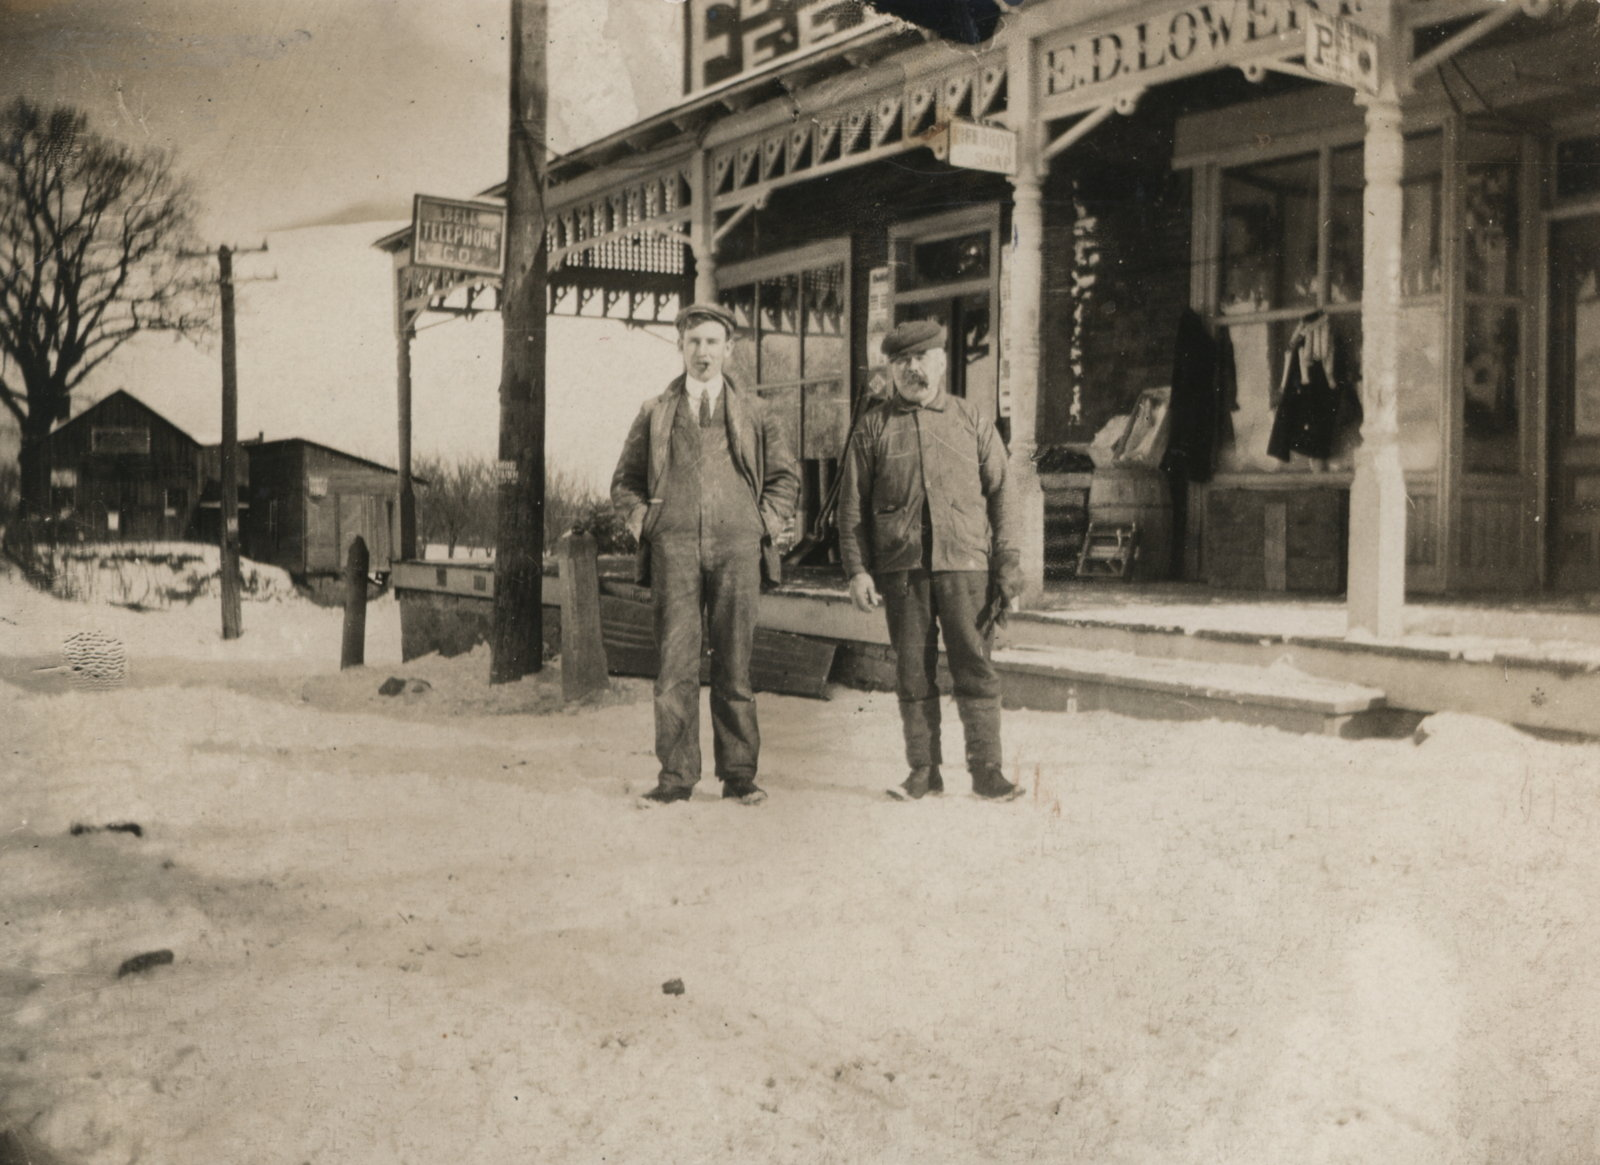 E.D. Lowrey's General Store in St. Davids